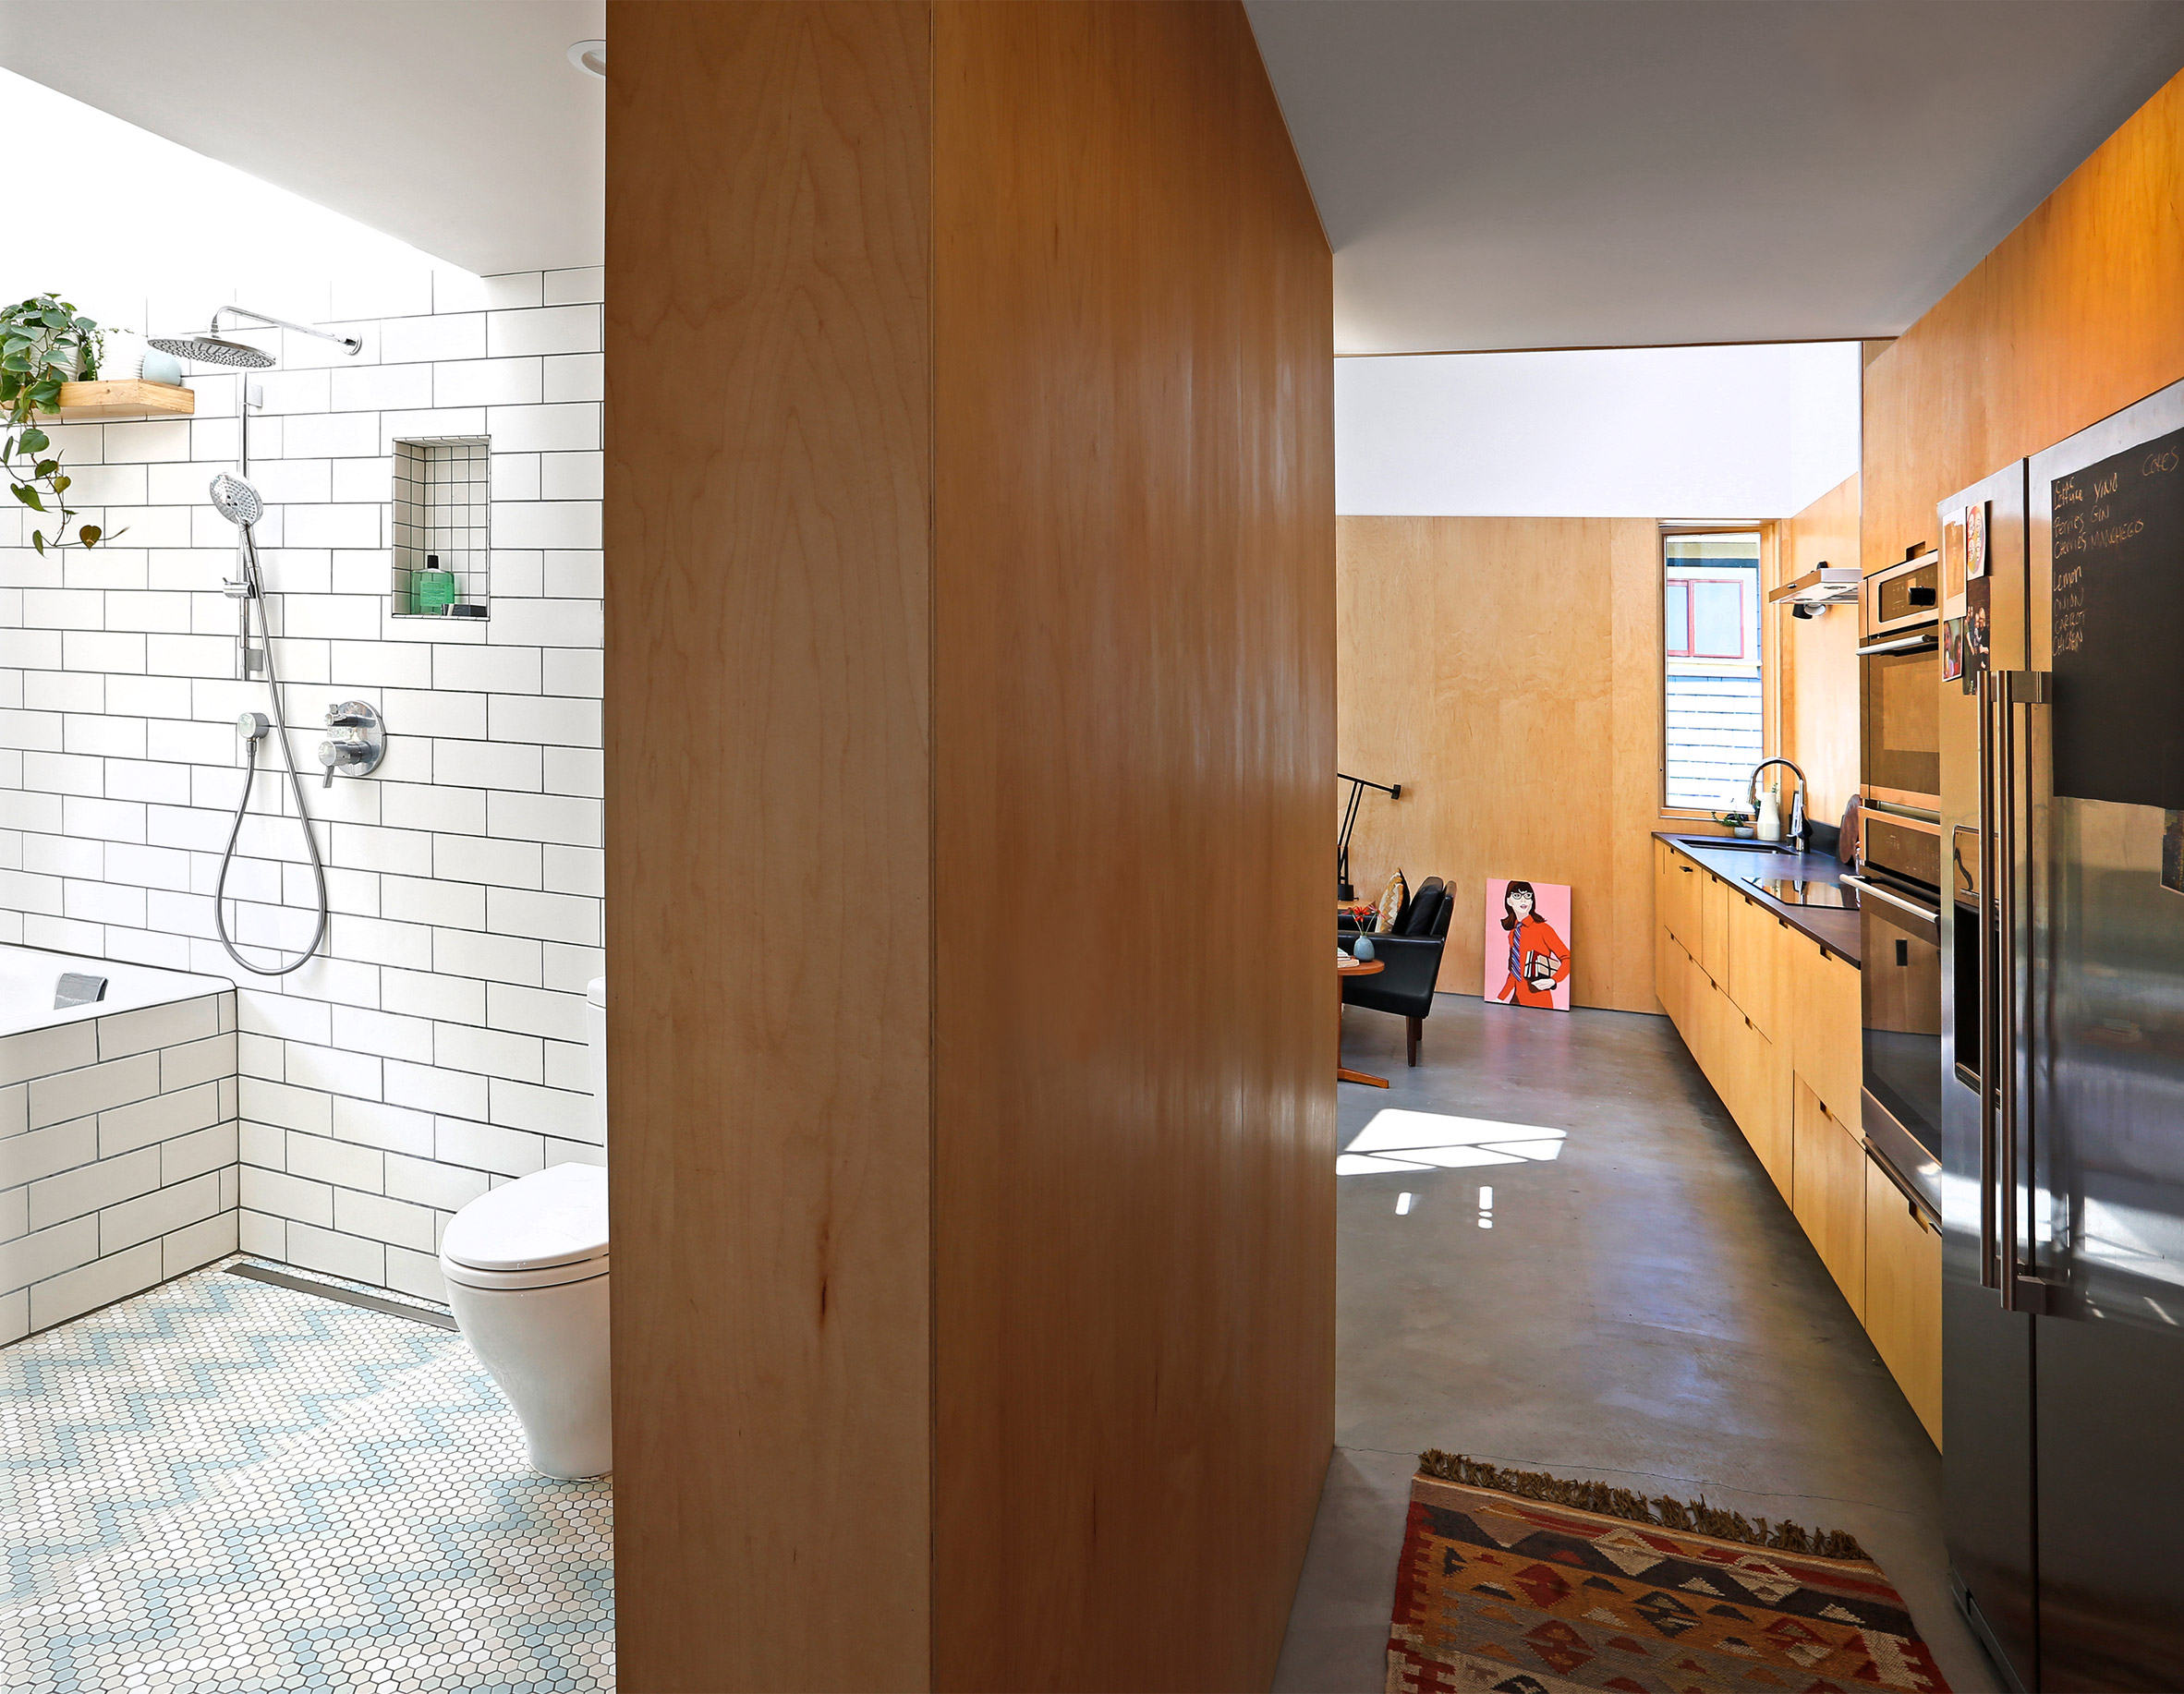 alley-cat-detached-auxiliary-dwelling-unit-shed-seattle-washingtondezeen2364col9-1585023330544903065465.jpg